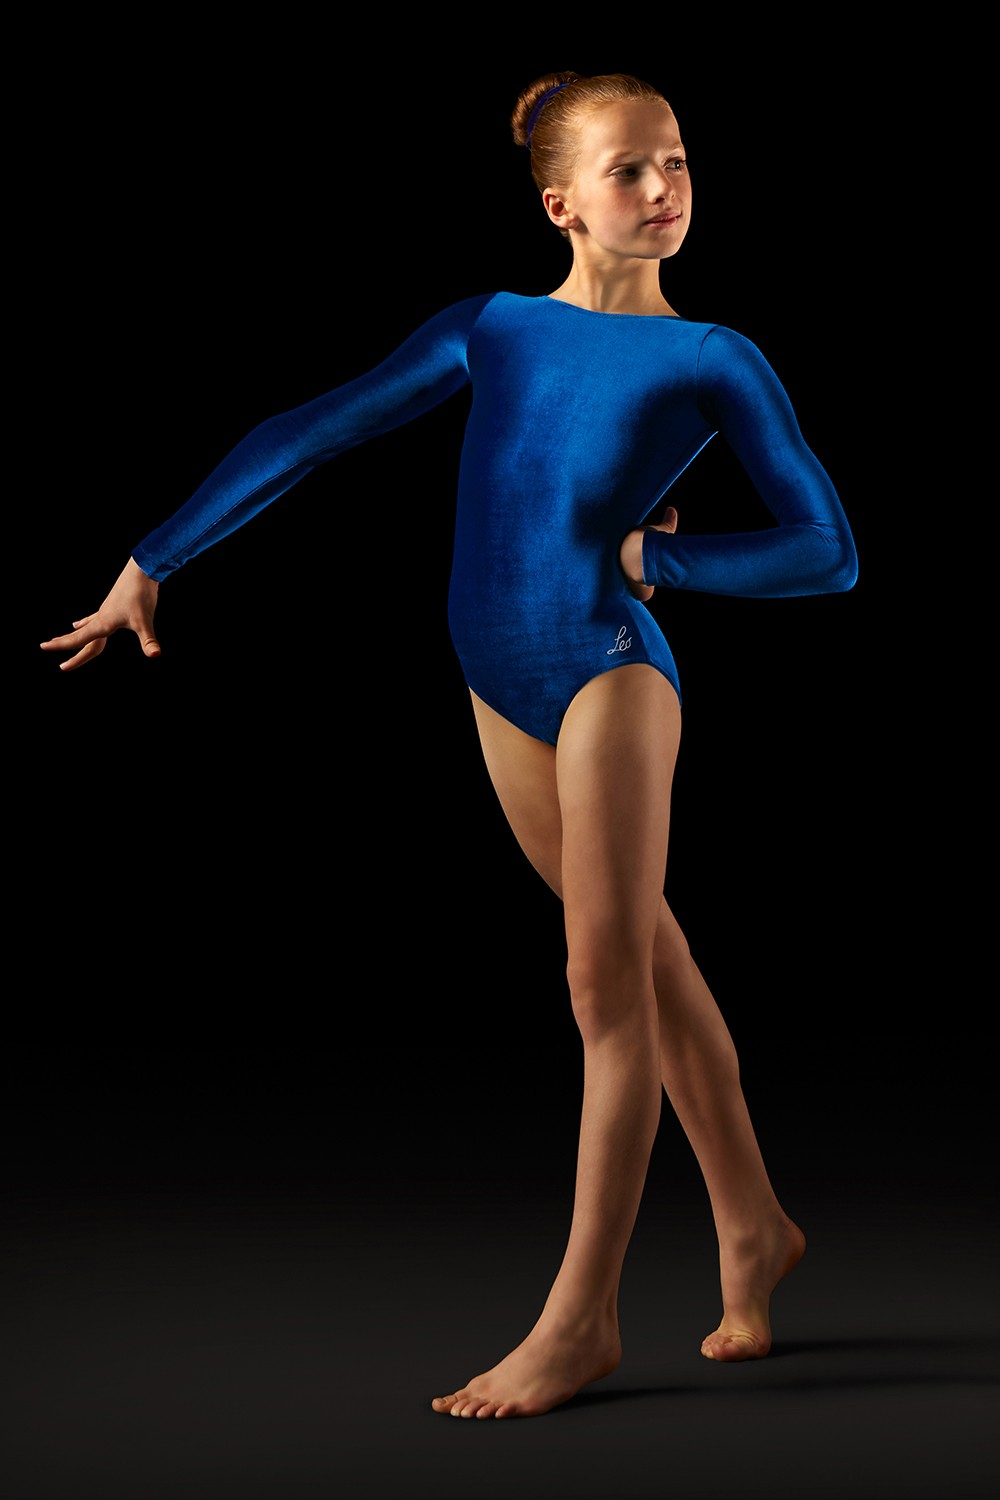 Velvet Long Sleeve Leotard   Women's Gymnastics Leotards